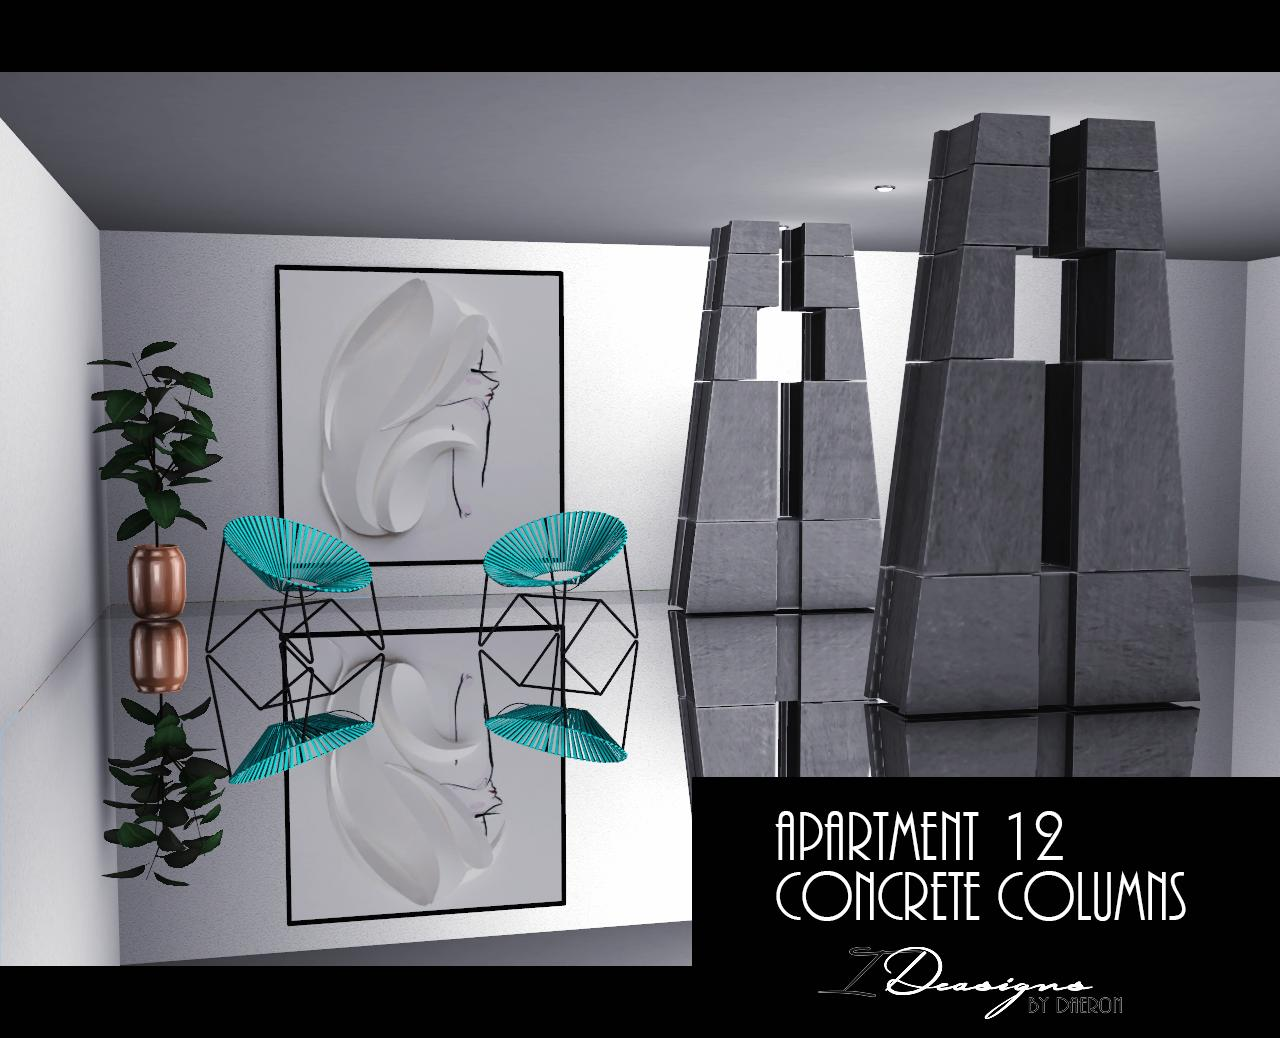 Apartment 12 Concrete Columns (new mesh) by Daer0n